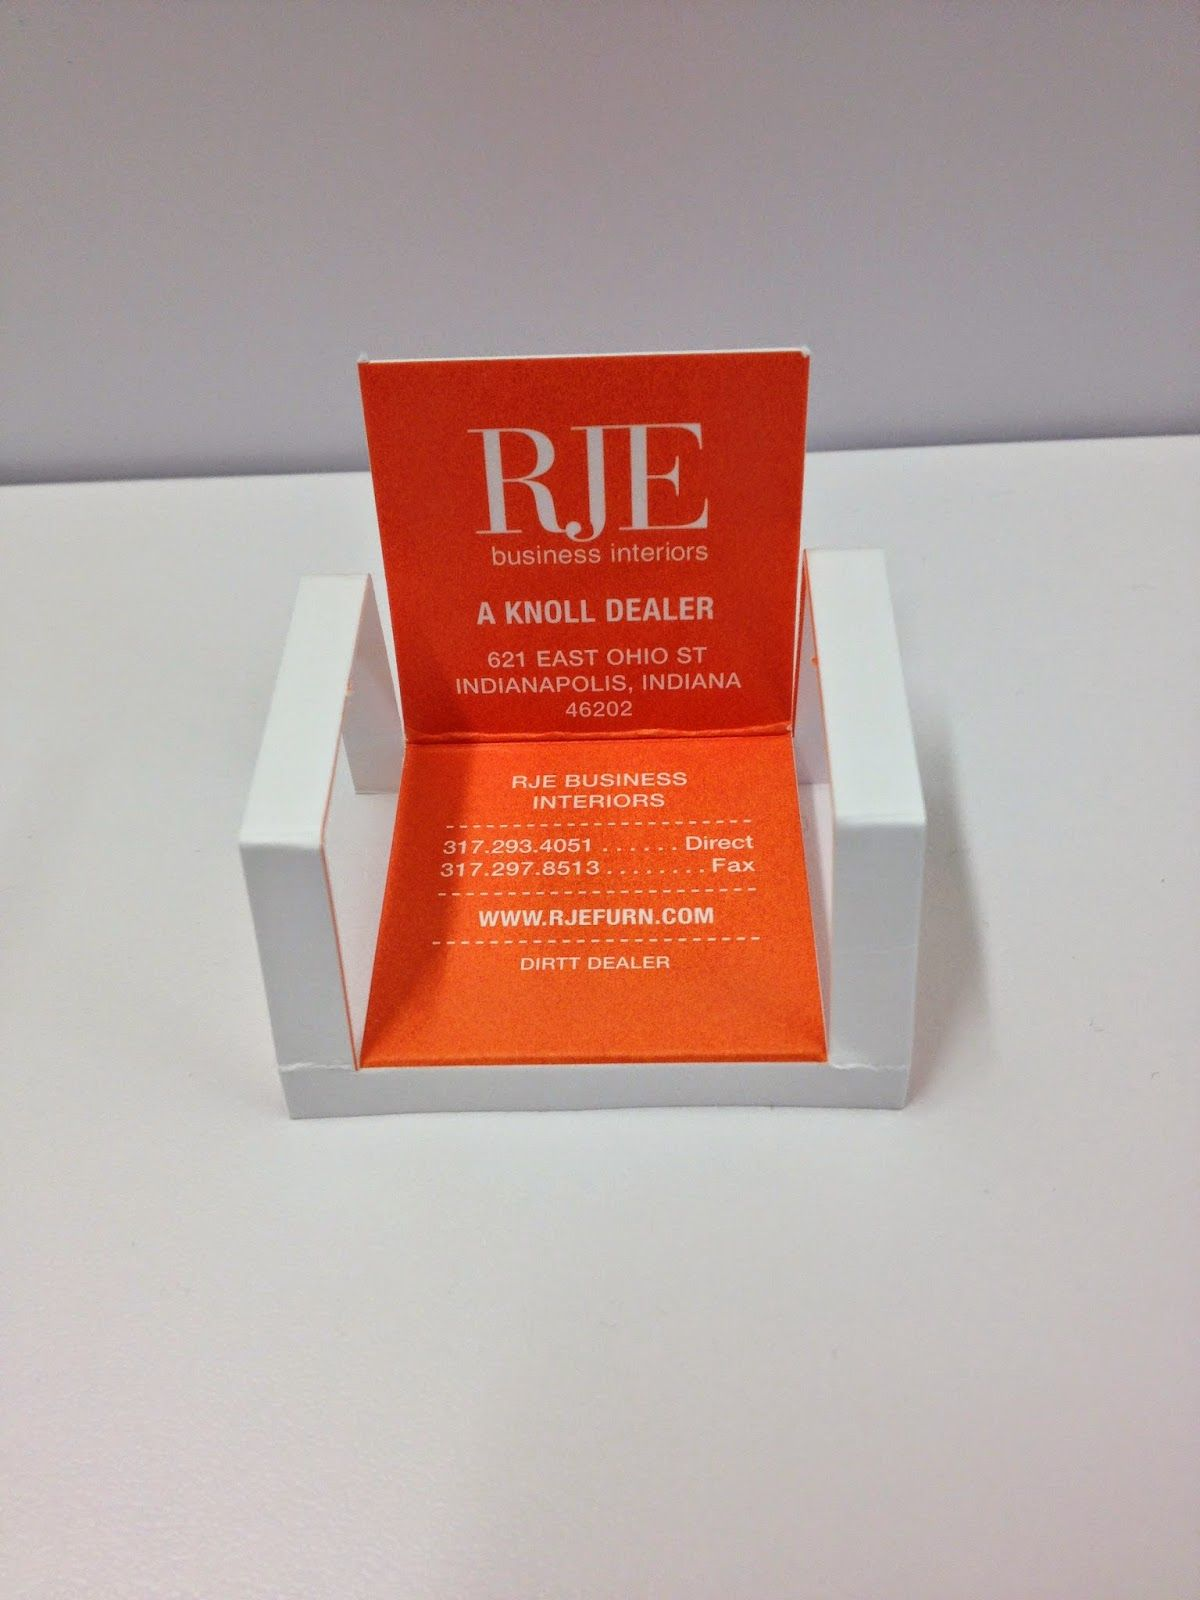 RJE Business Interiors: RJE New Business Card Design and Awards ...